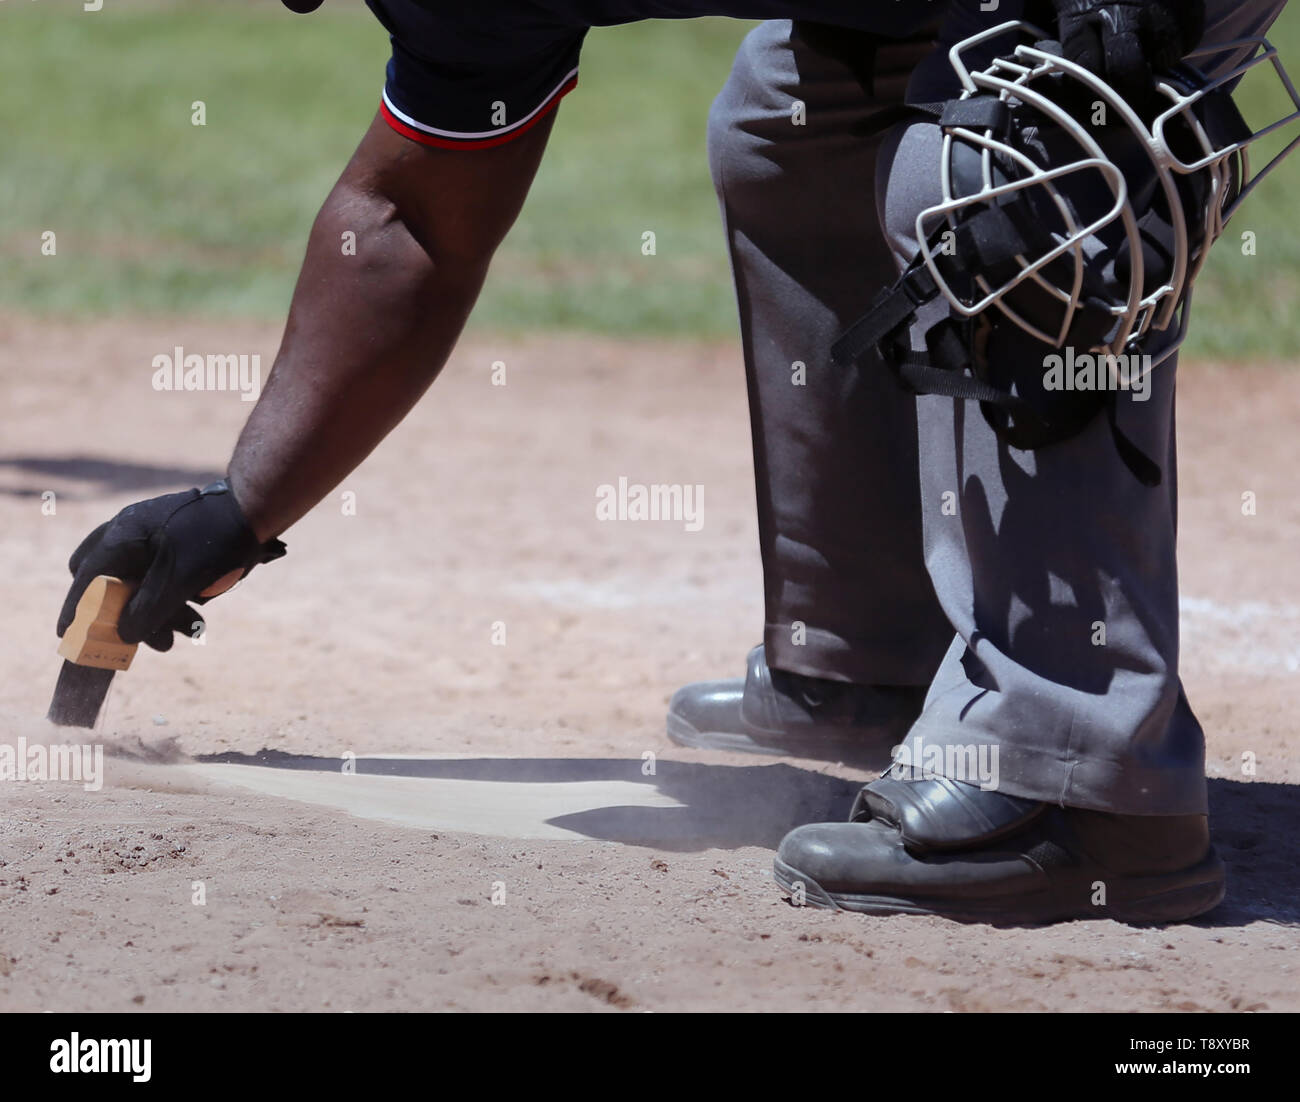 African American umpire cleaning home plate at a high school baseball game Stock Photo